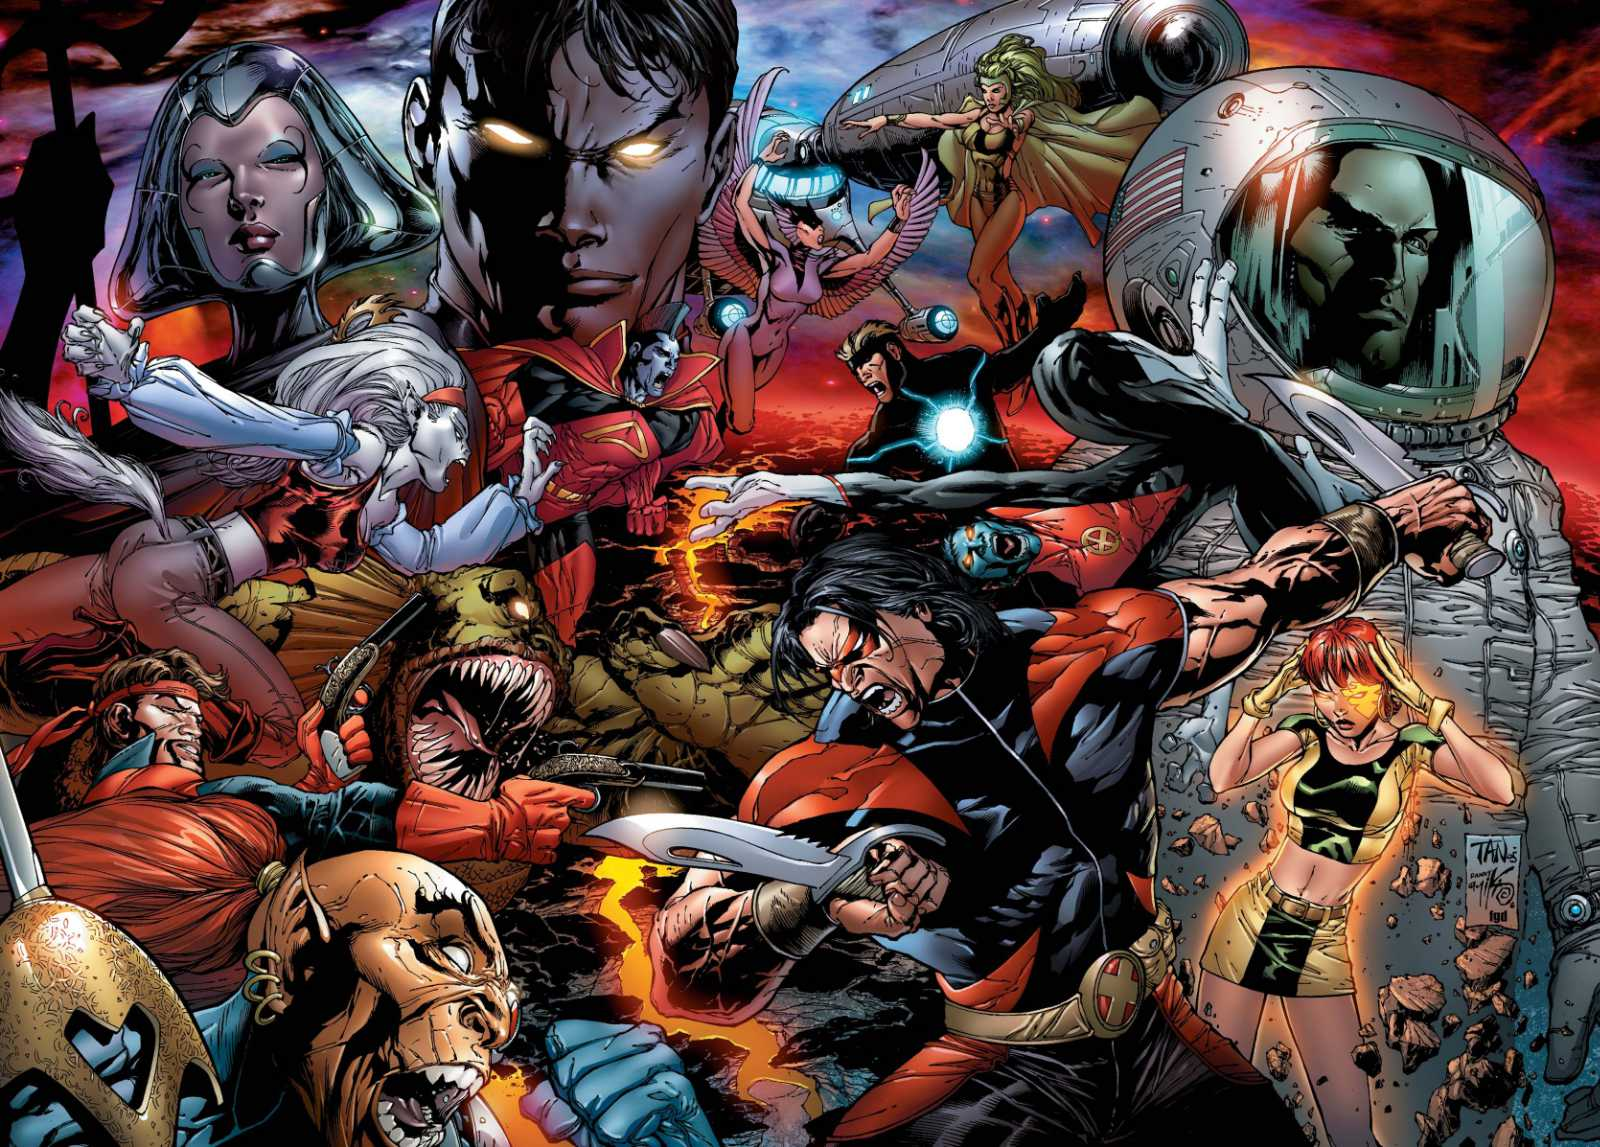 Read more about the article From A Library: Ed Brubaker's X-Men